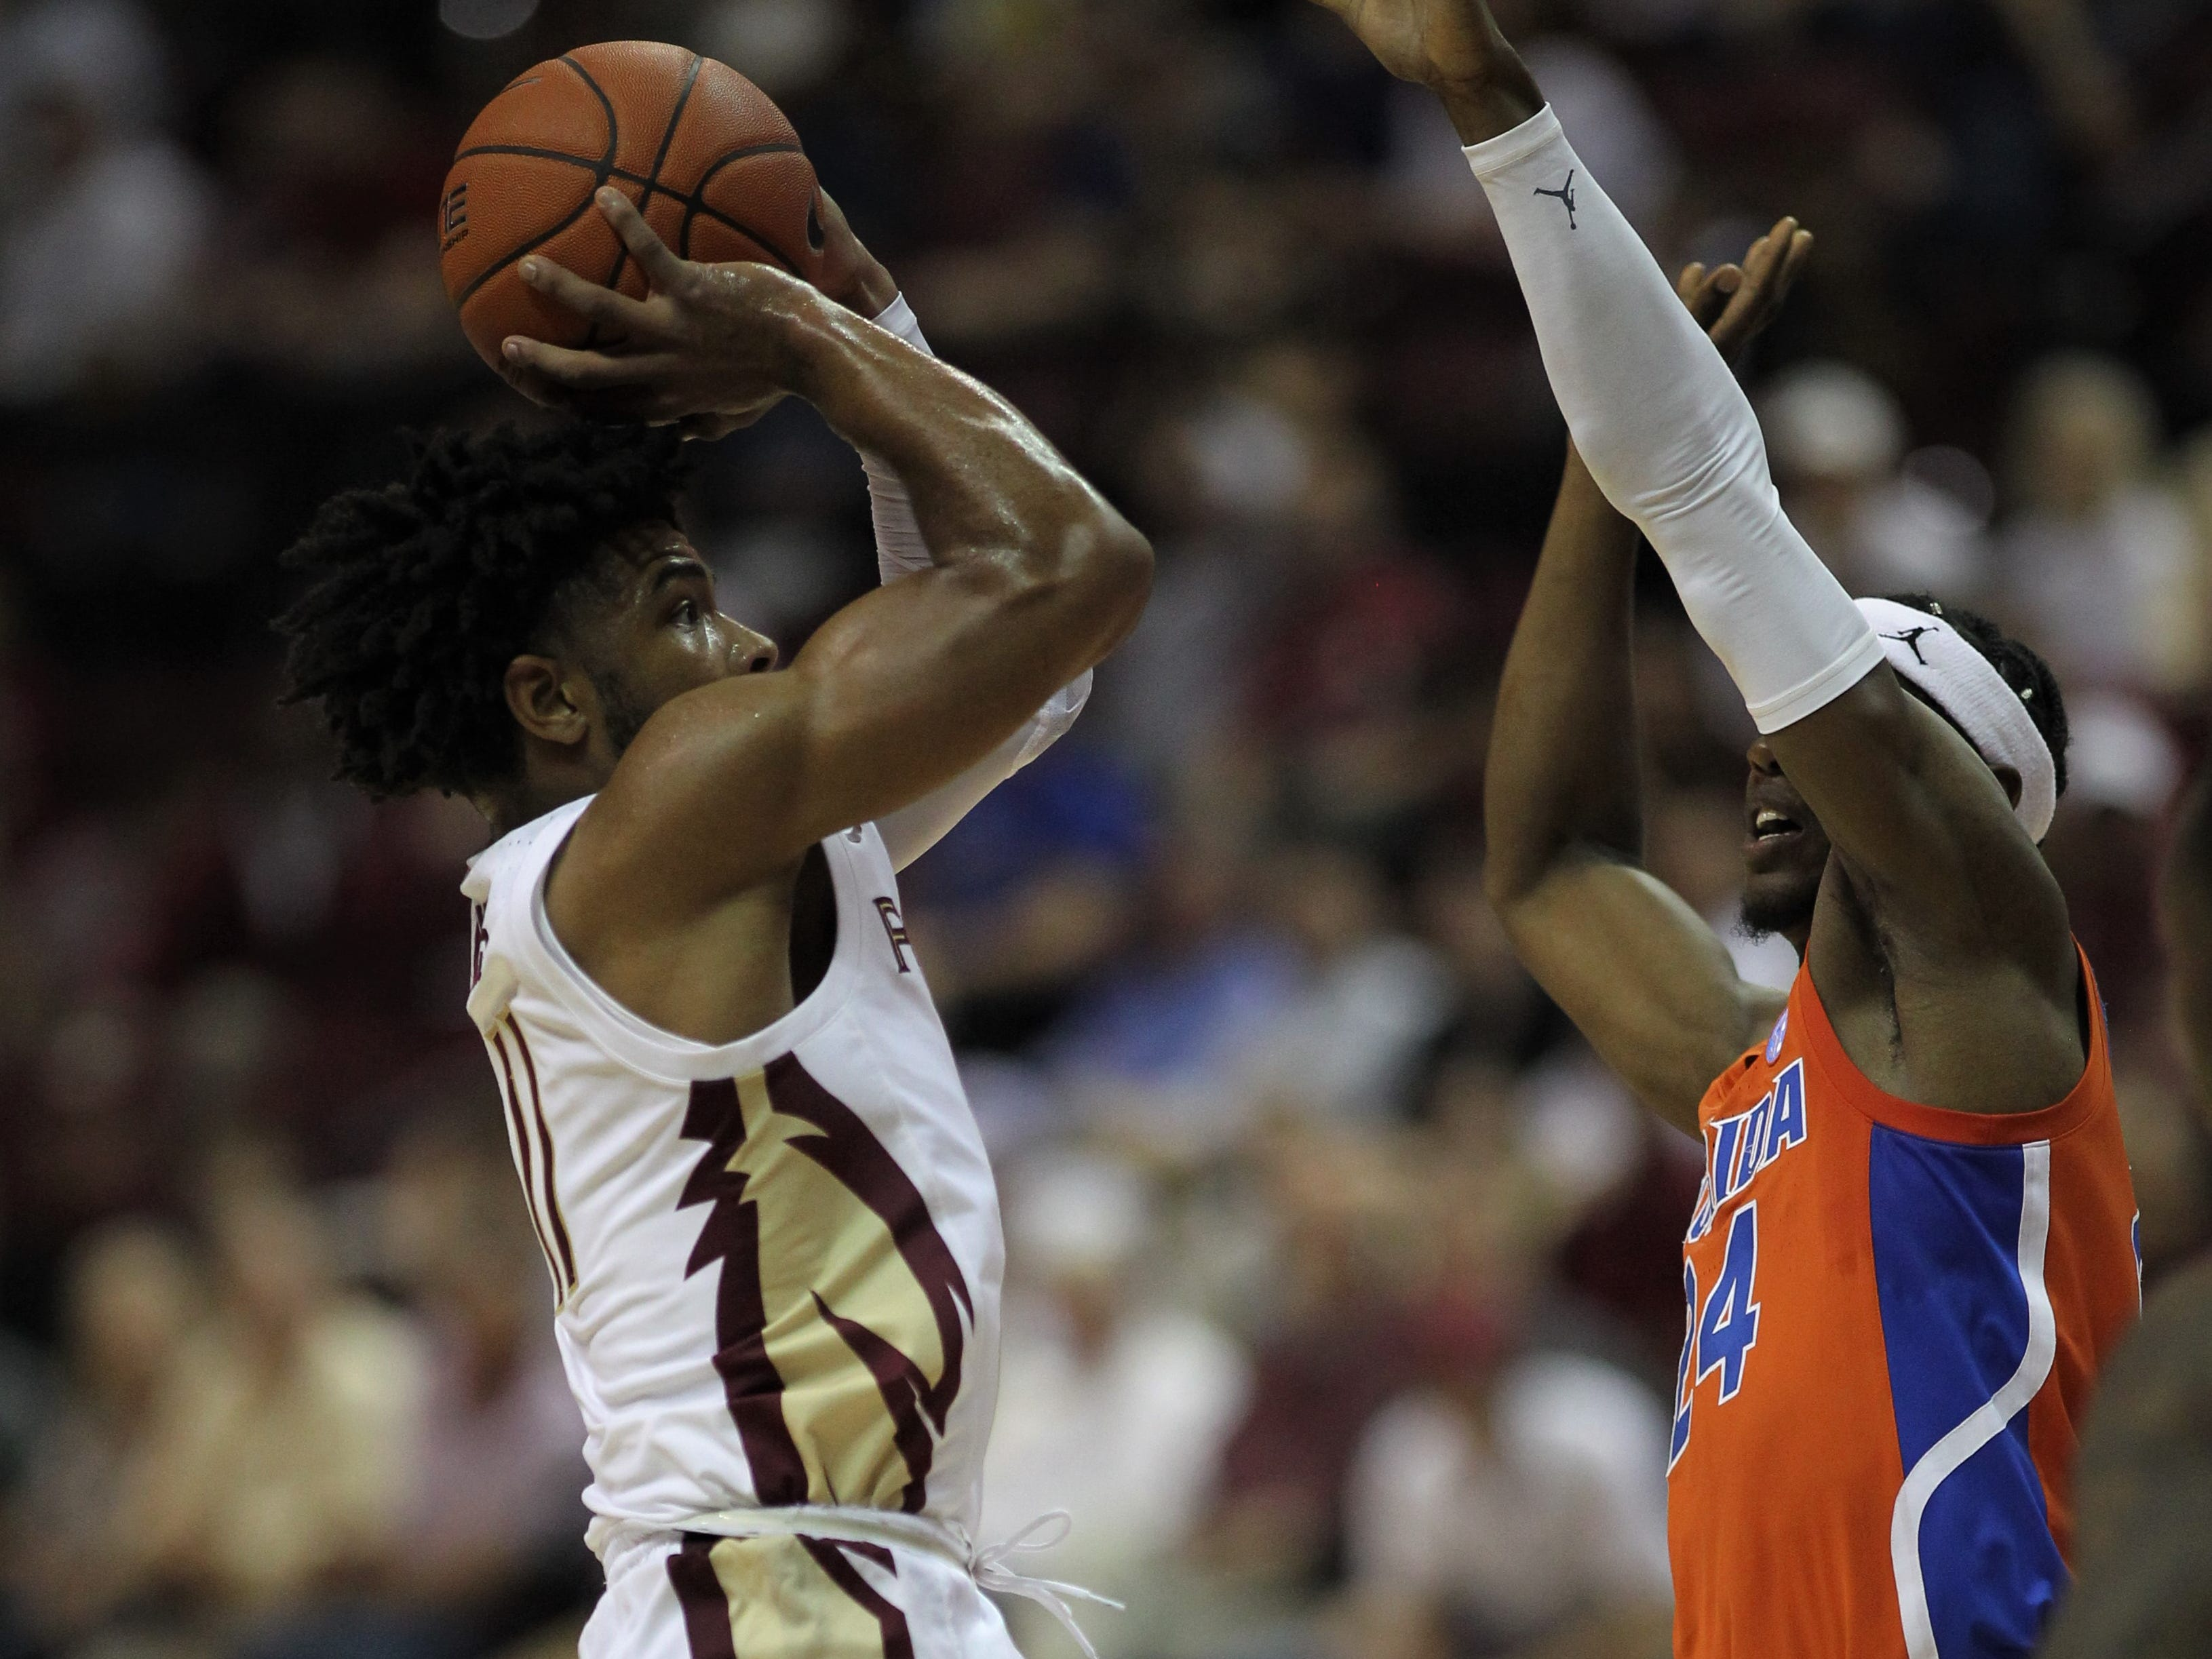 Florida State's David Nichols shoots over Florida's Daundrae Ballard during the Sunshine Showdown game Tuesday at the Tucker Civic Center.